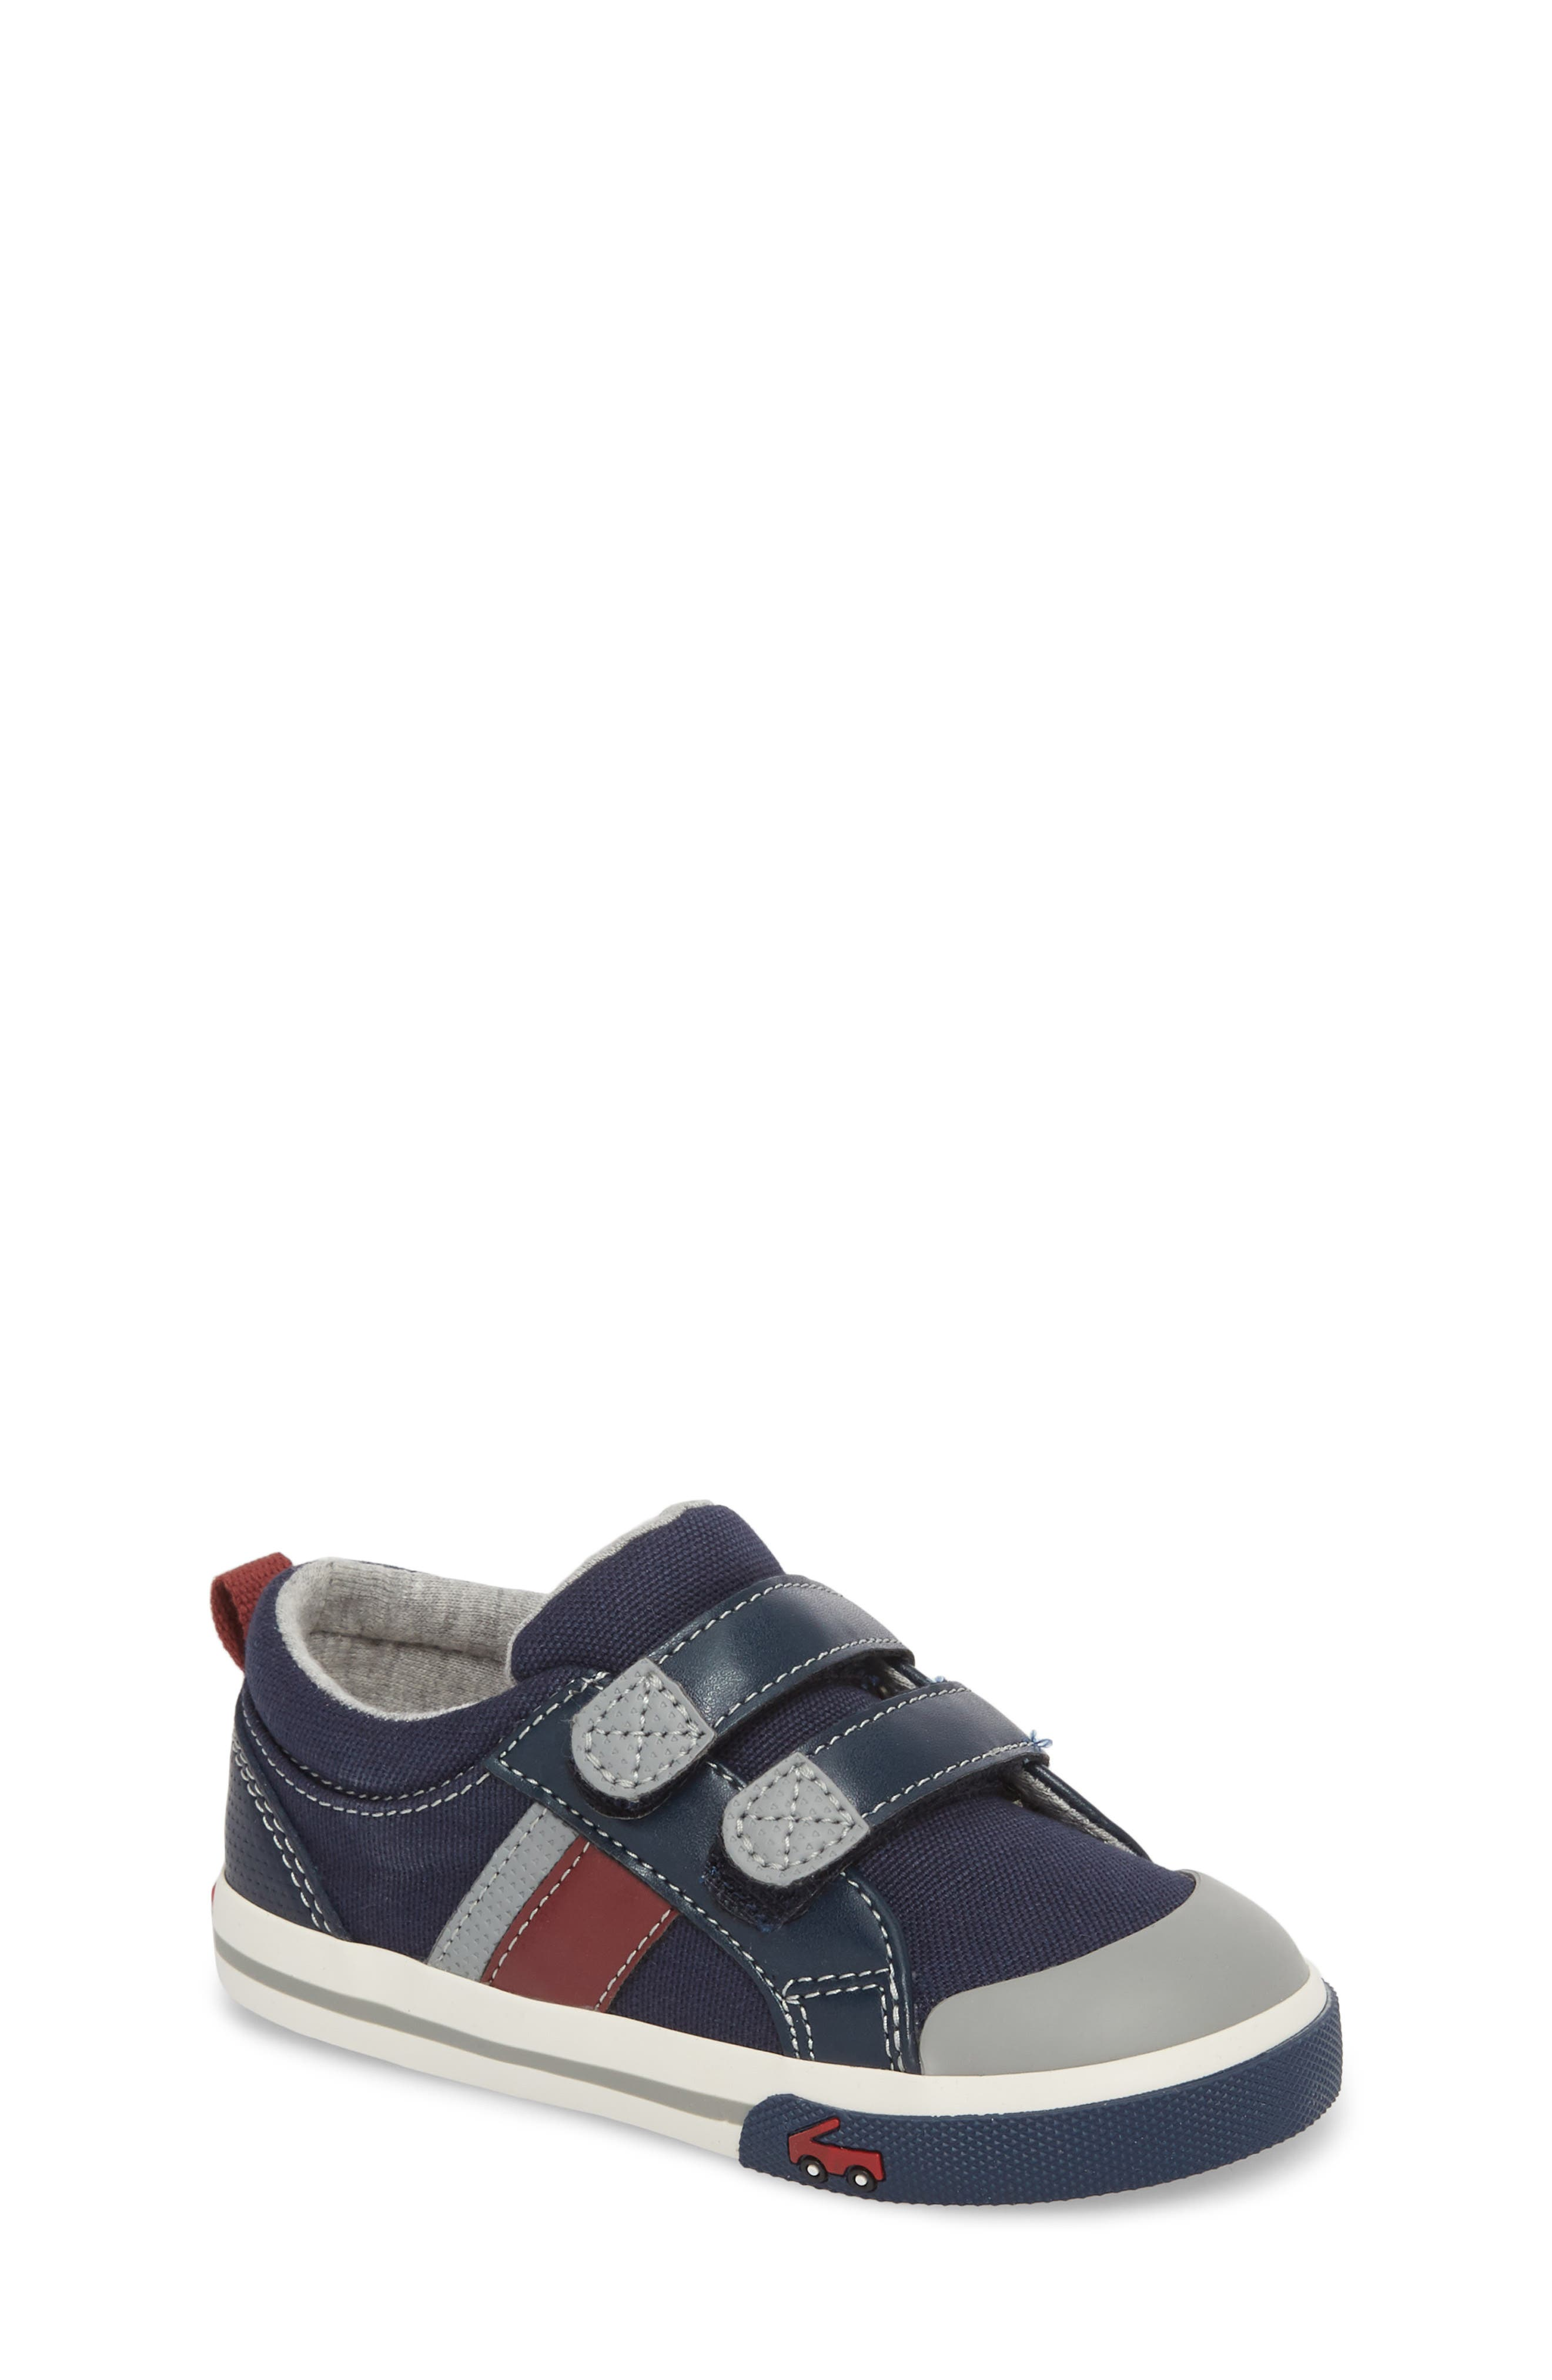 'Russell' Sneaker,                         Main,                         color, NAVY/ RED